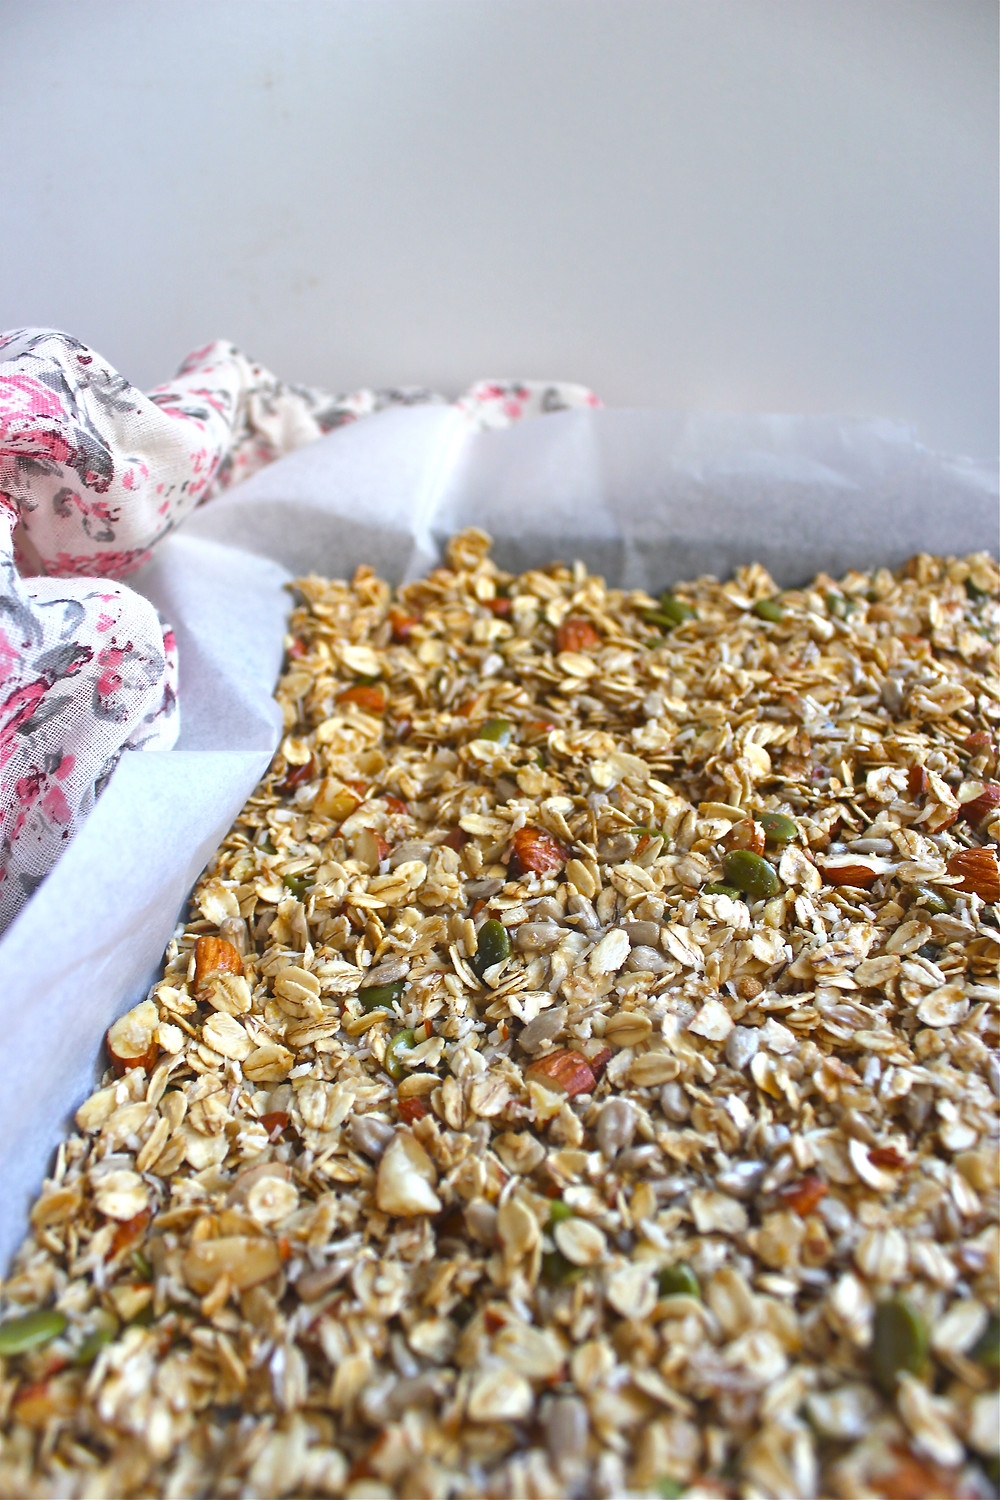 When making your own granola at home you have the ability to go lightly on the added sugar and oils, while also having the freedom to add any spices, nuts, seeds or dried fruit of your choosing. So much goodness with one easy recipe!